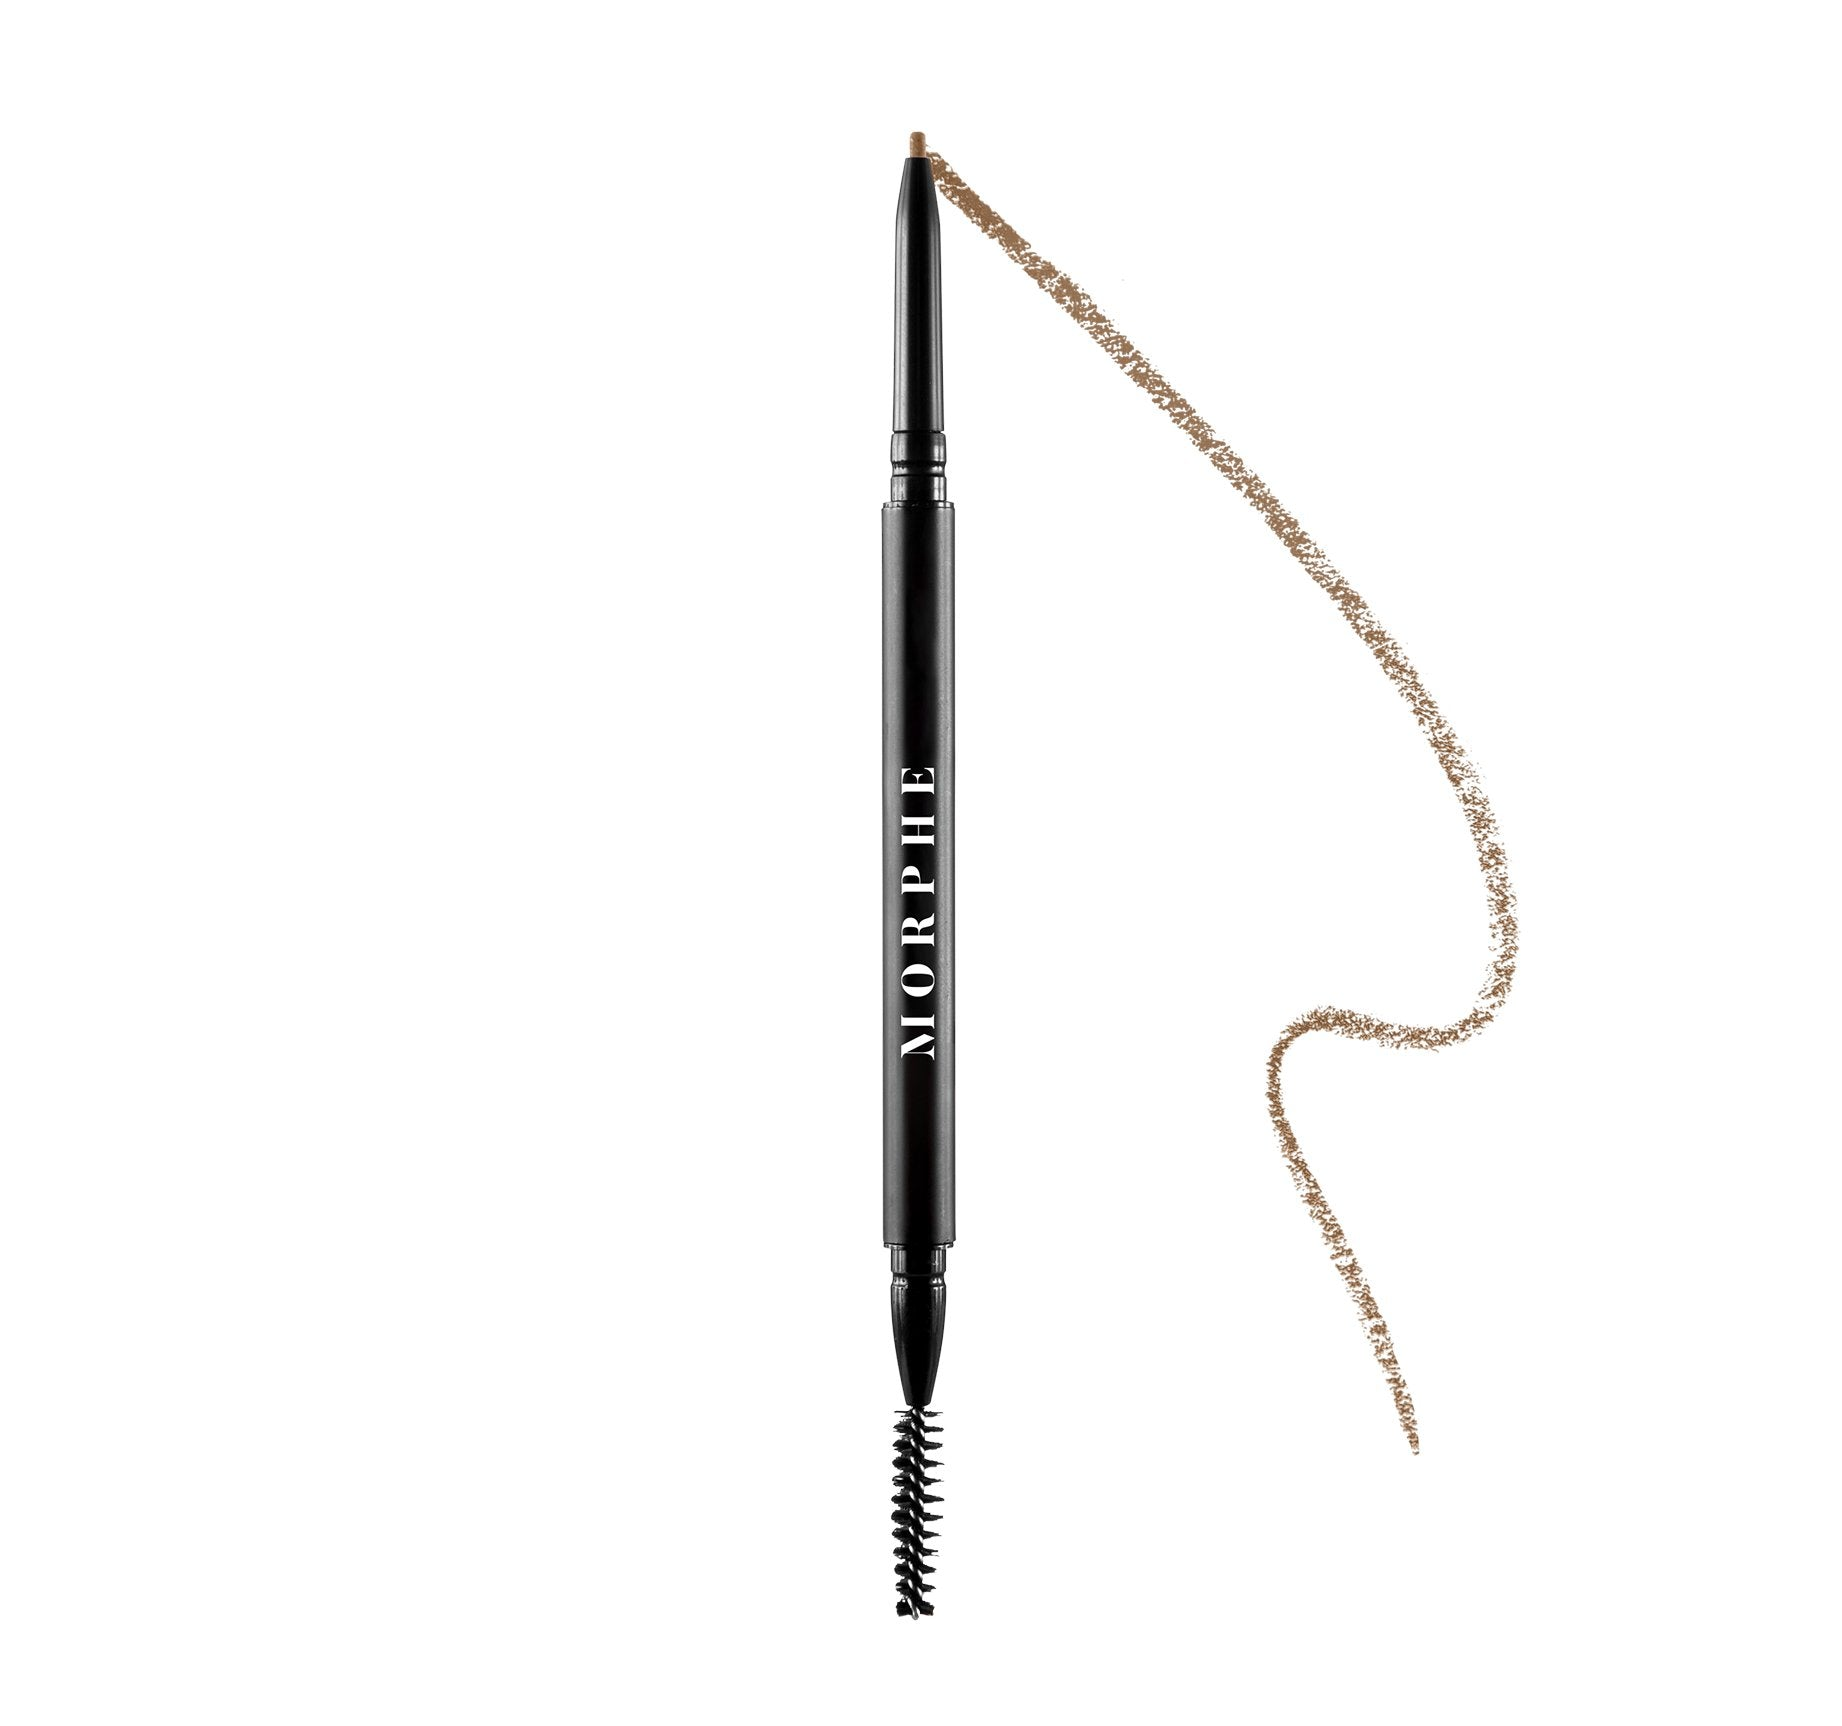 MICRO BROW PENCIL - PRALINE, view larger image